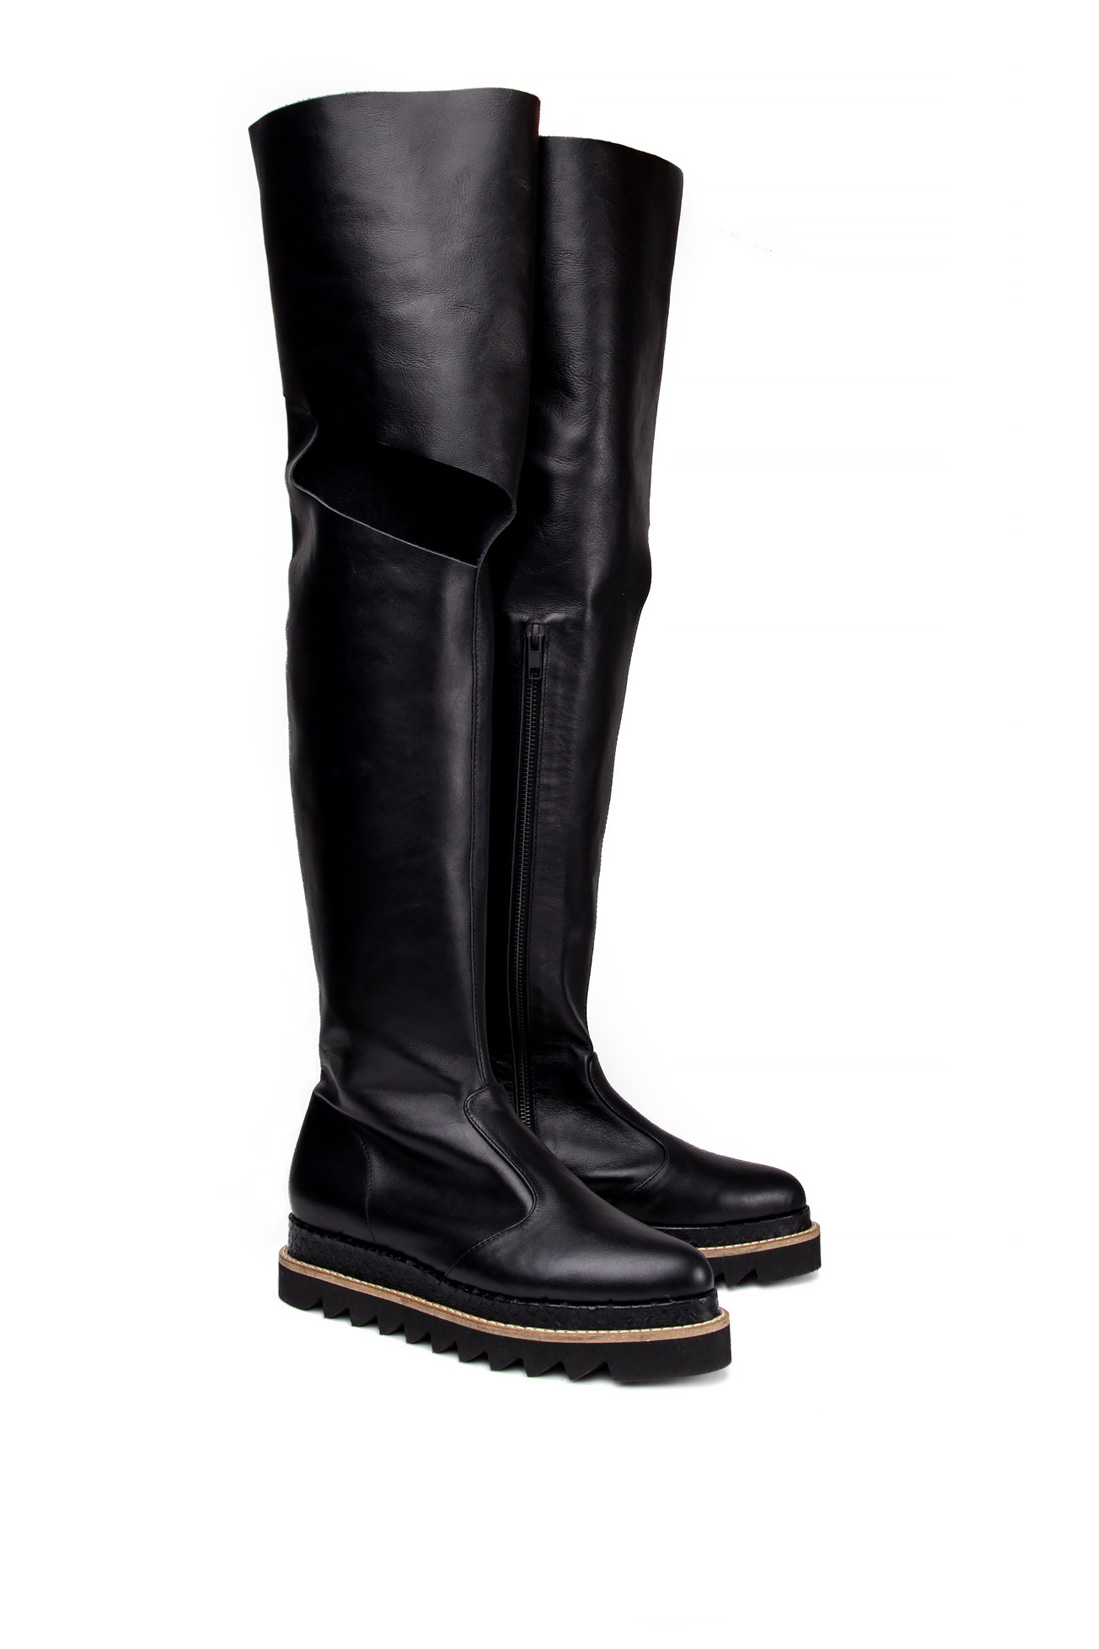 Cutout leather over-the-knee boots Mihaela Glavan  image 1